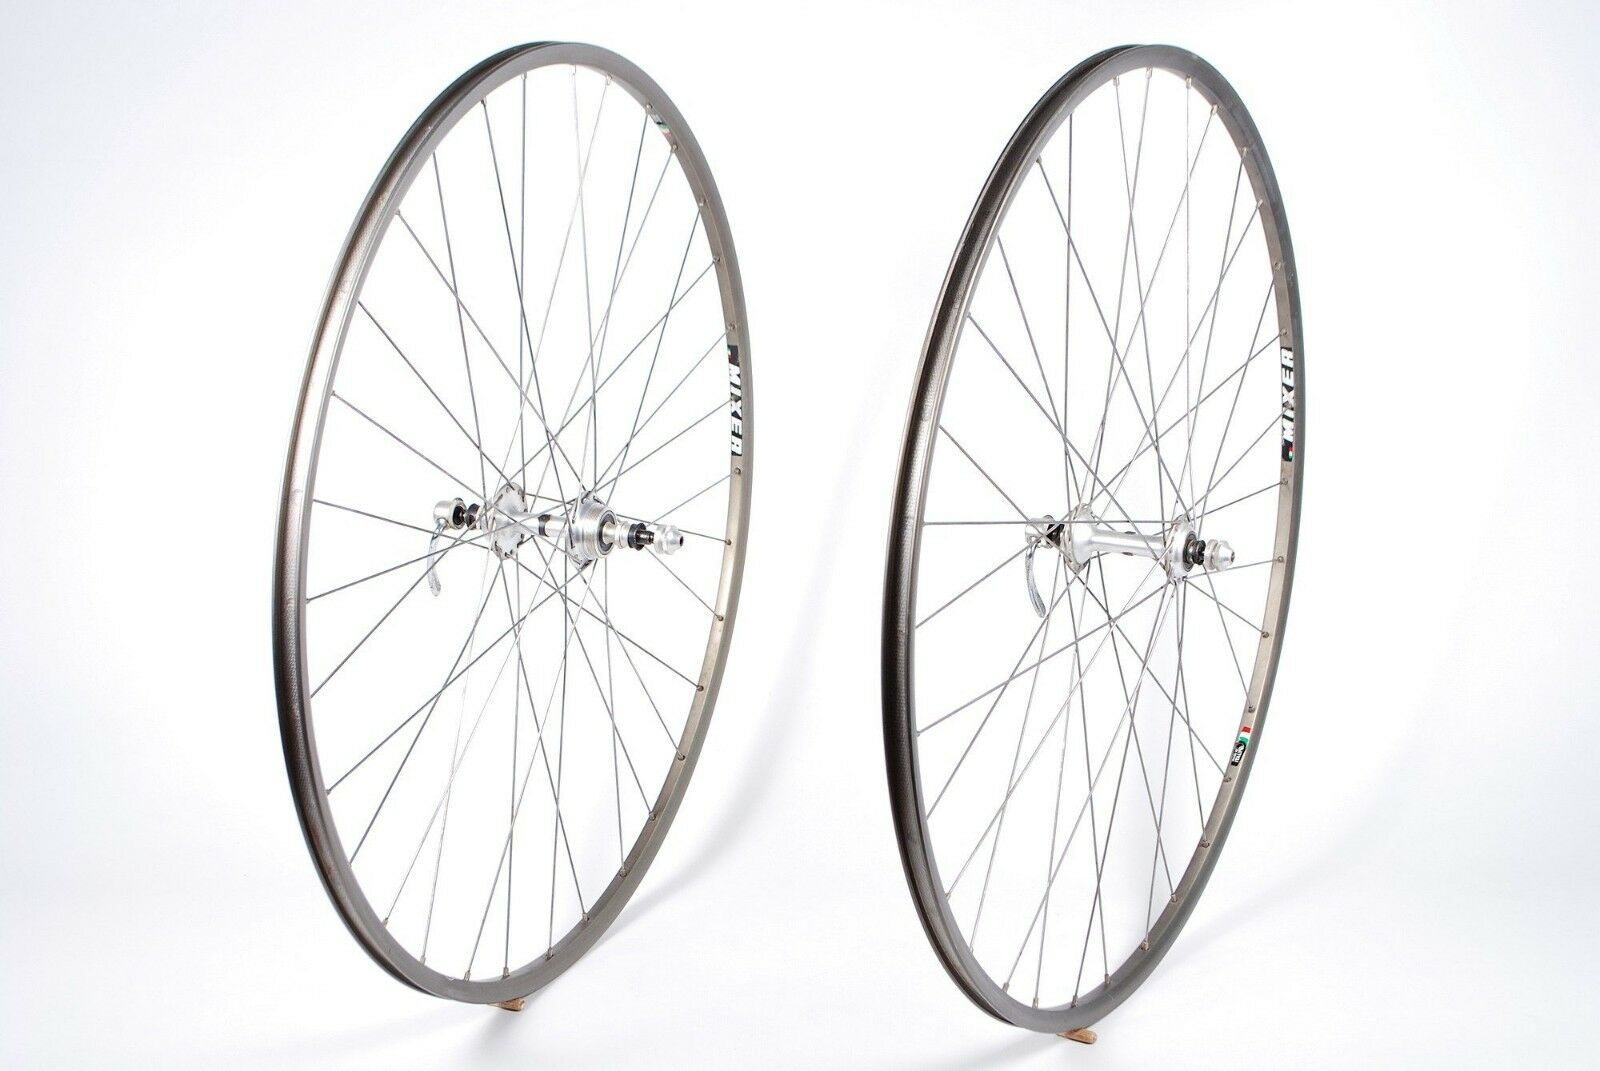 NISI Mixer Bicycle Clincher Wheels 32 H & Vintage Ofmega Super Competizione Hubs